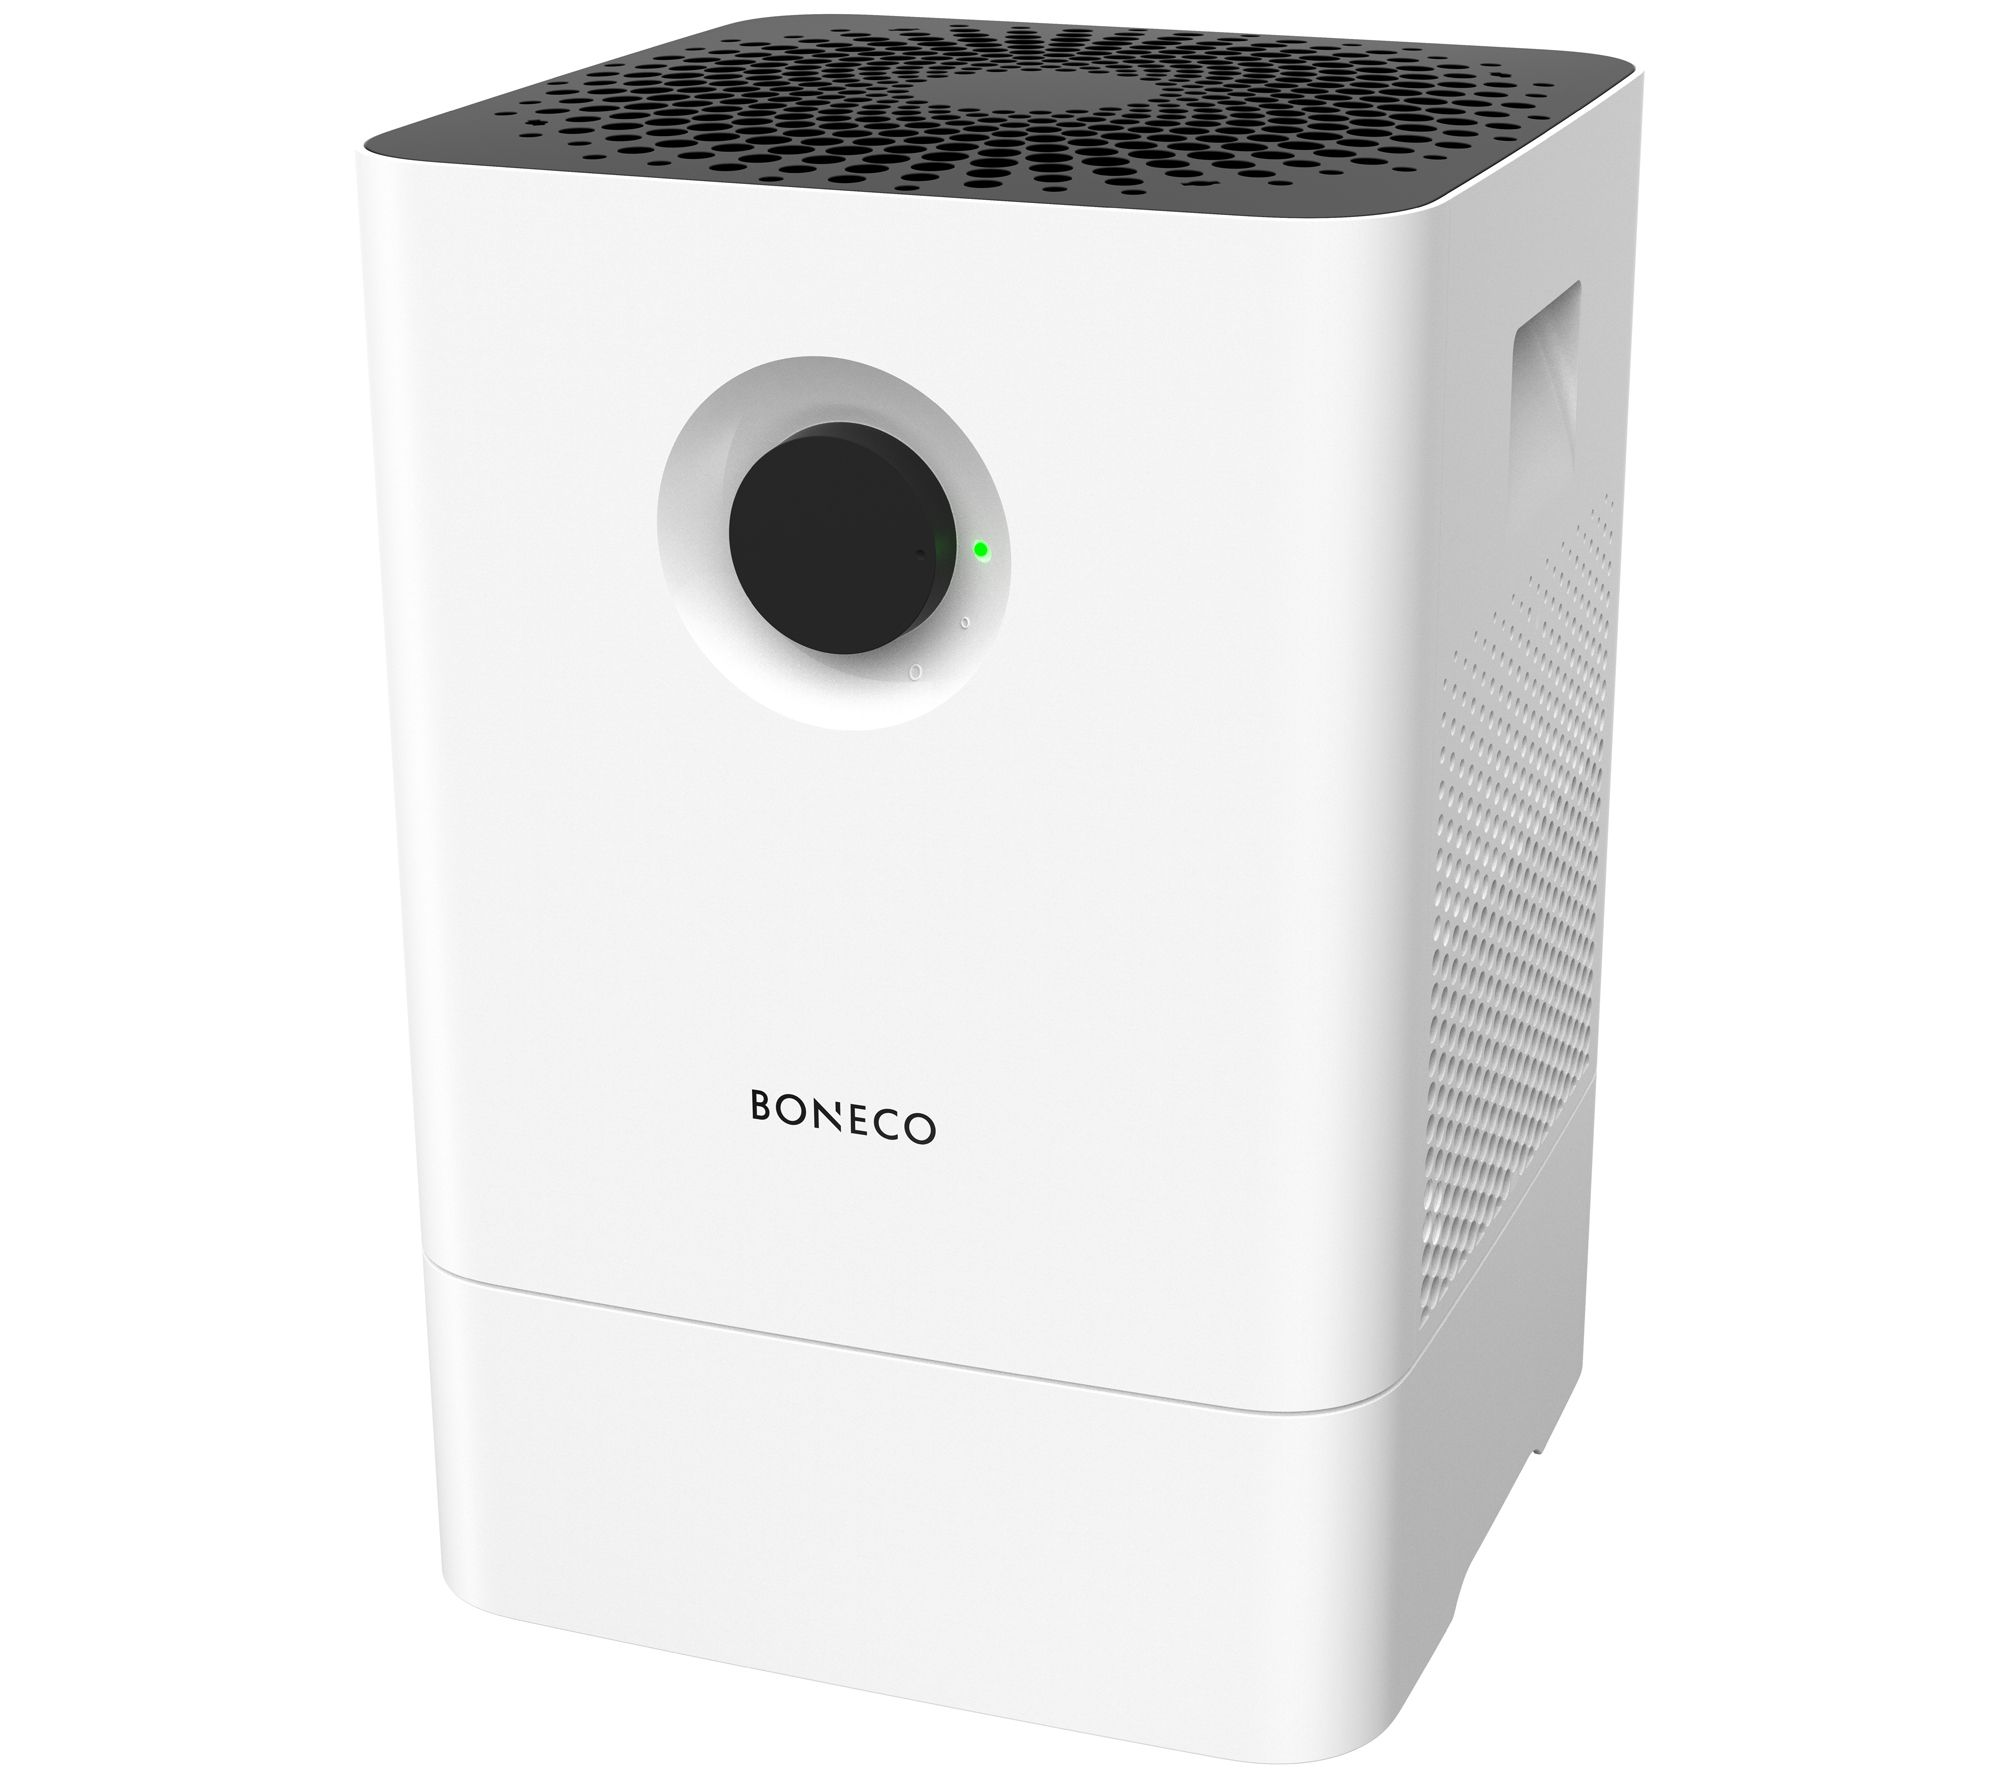 $20 off a 2-in-1 air washer & humidifier